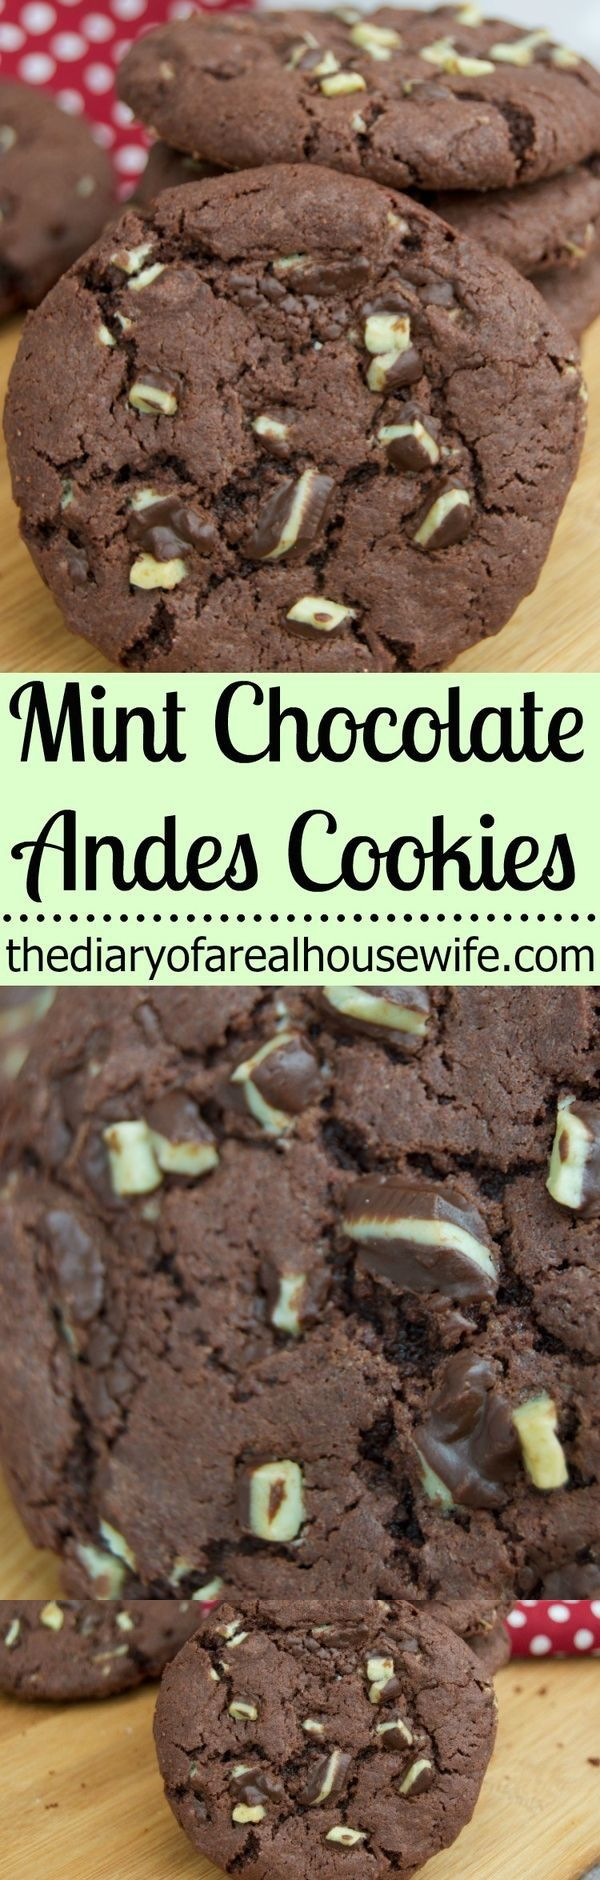 Mint Chocolate Andes Cookies